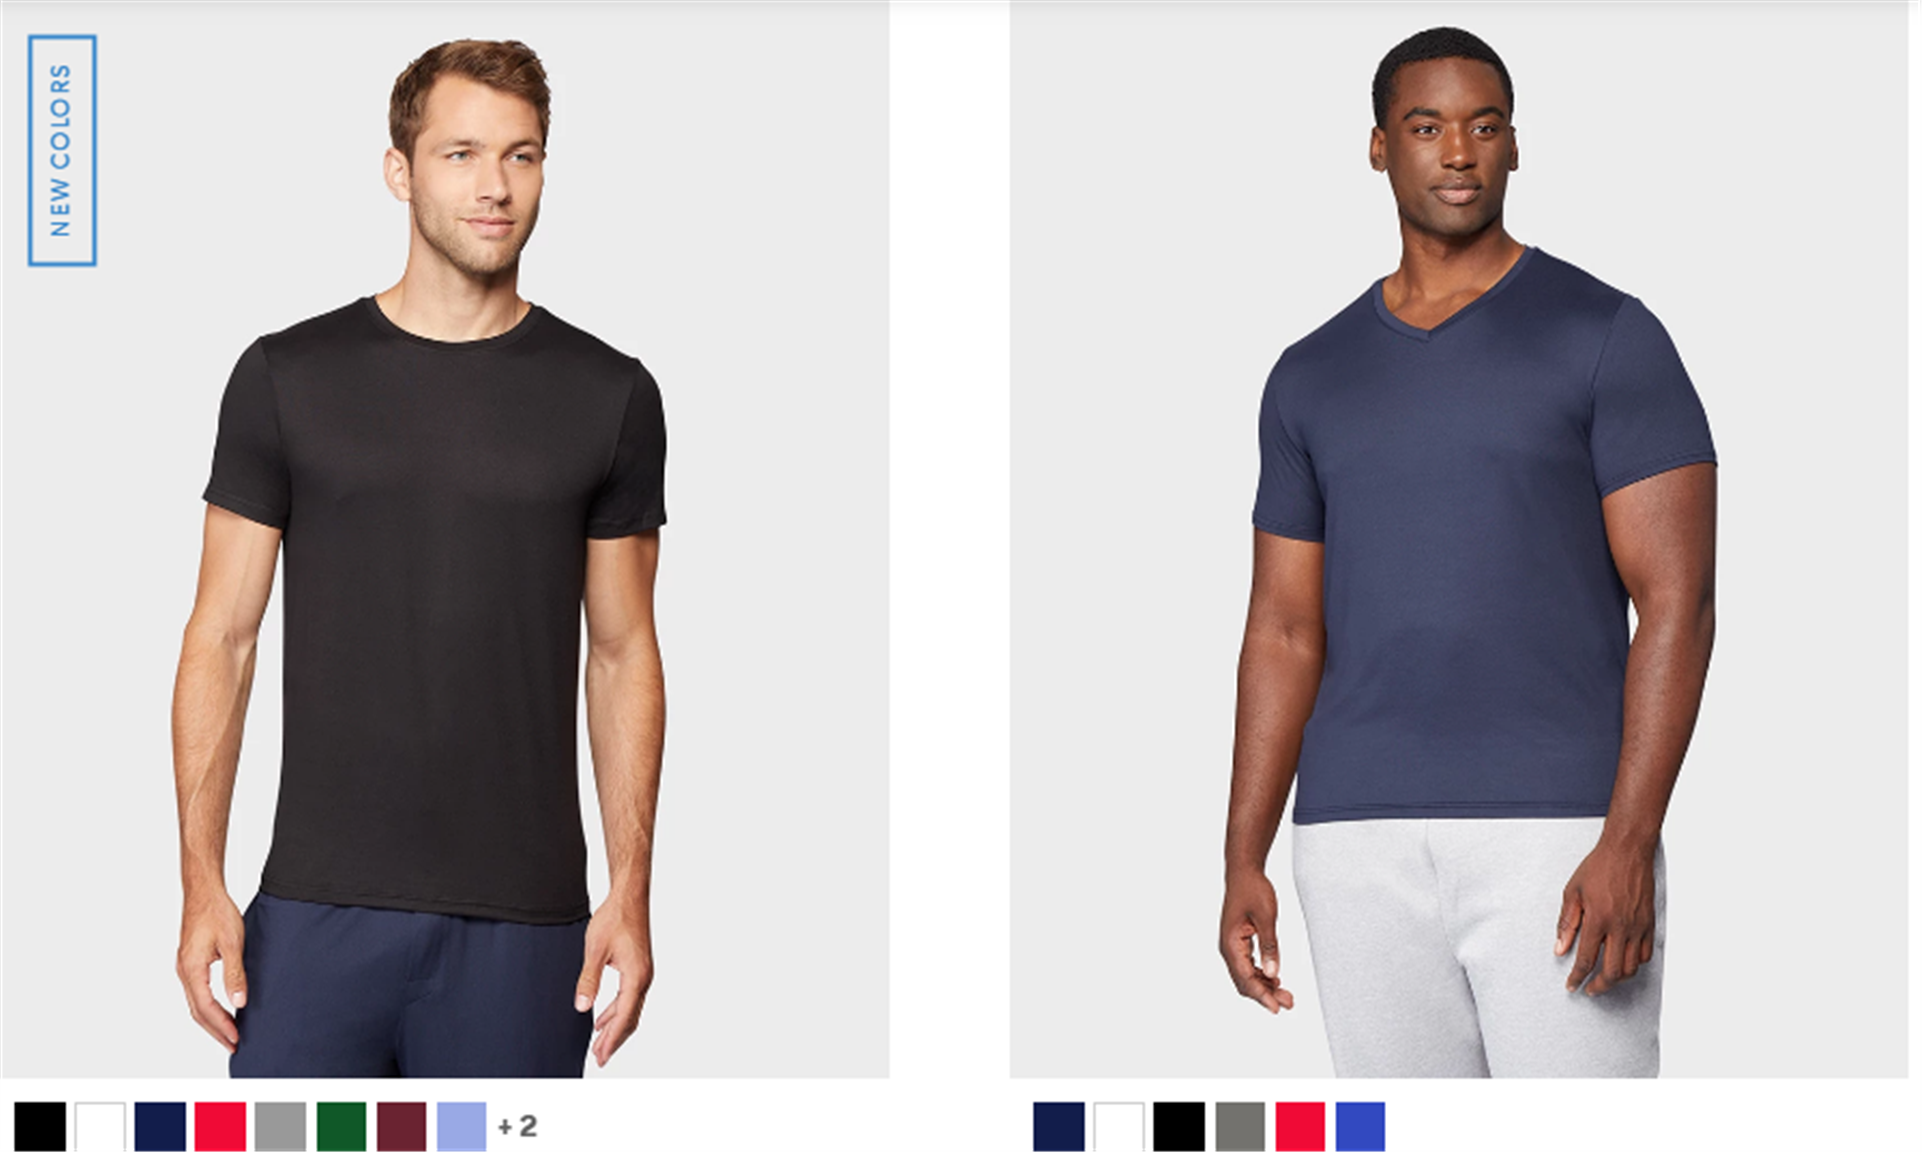 Men's Cool Crew And V-Neck T-Shirts Are 7 for $35 (Comes in a Variety of Colors) + Free Shipping!